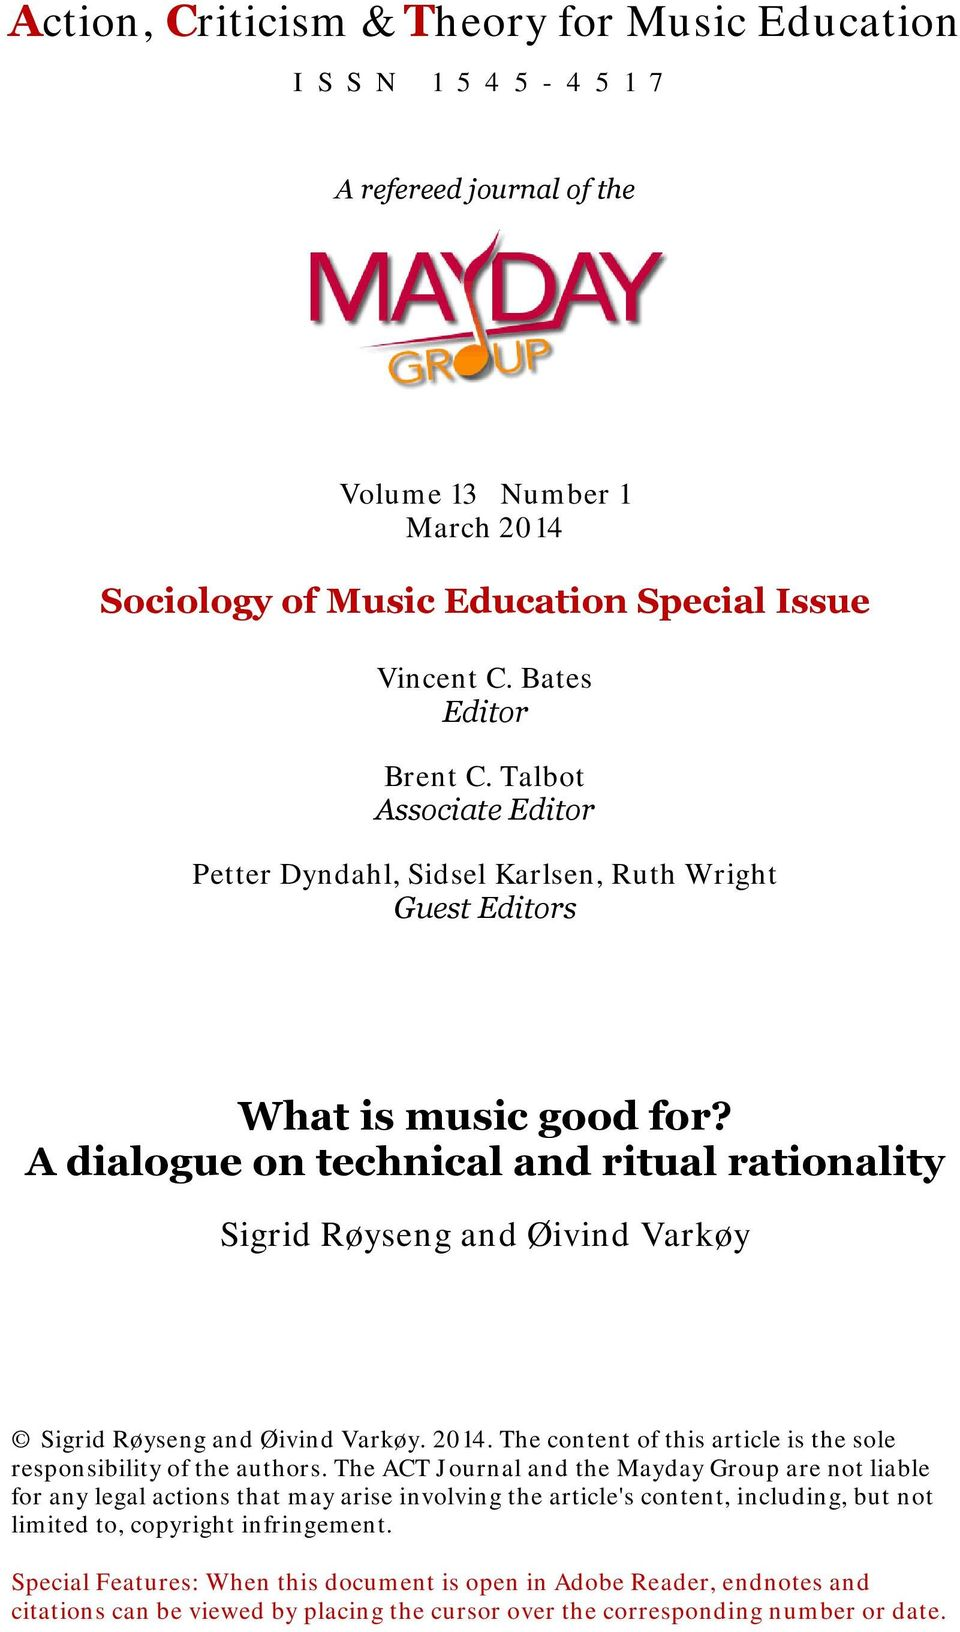 A dialogue on technical and ritual rationality Sigrid Røyseng and Øivind Varkøy Sigrid Røyseng and Øivind Varkøy. 2014. The content of this article is the sole responsibility of the authors.